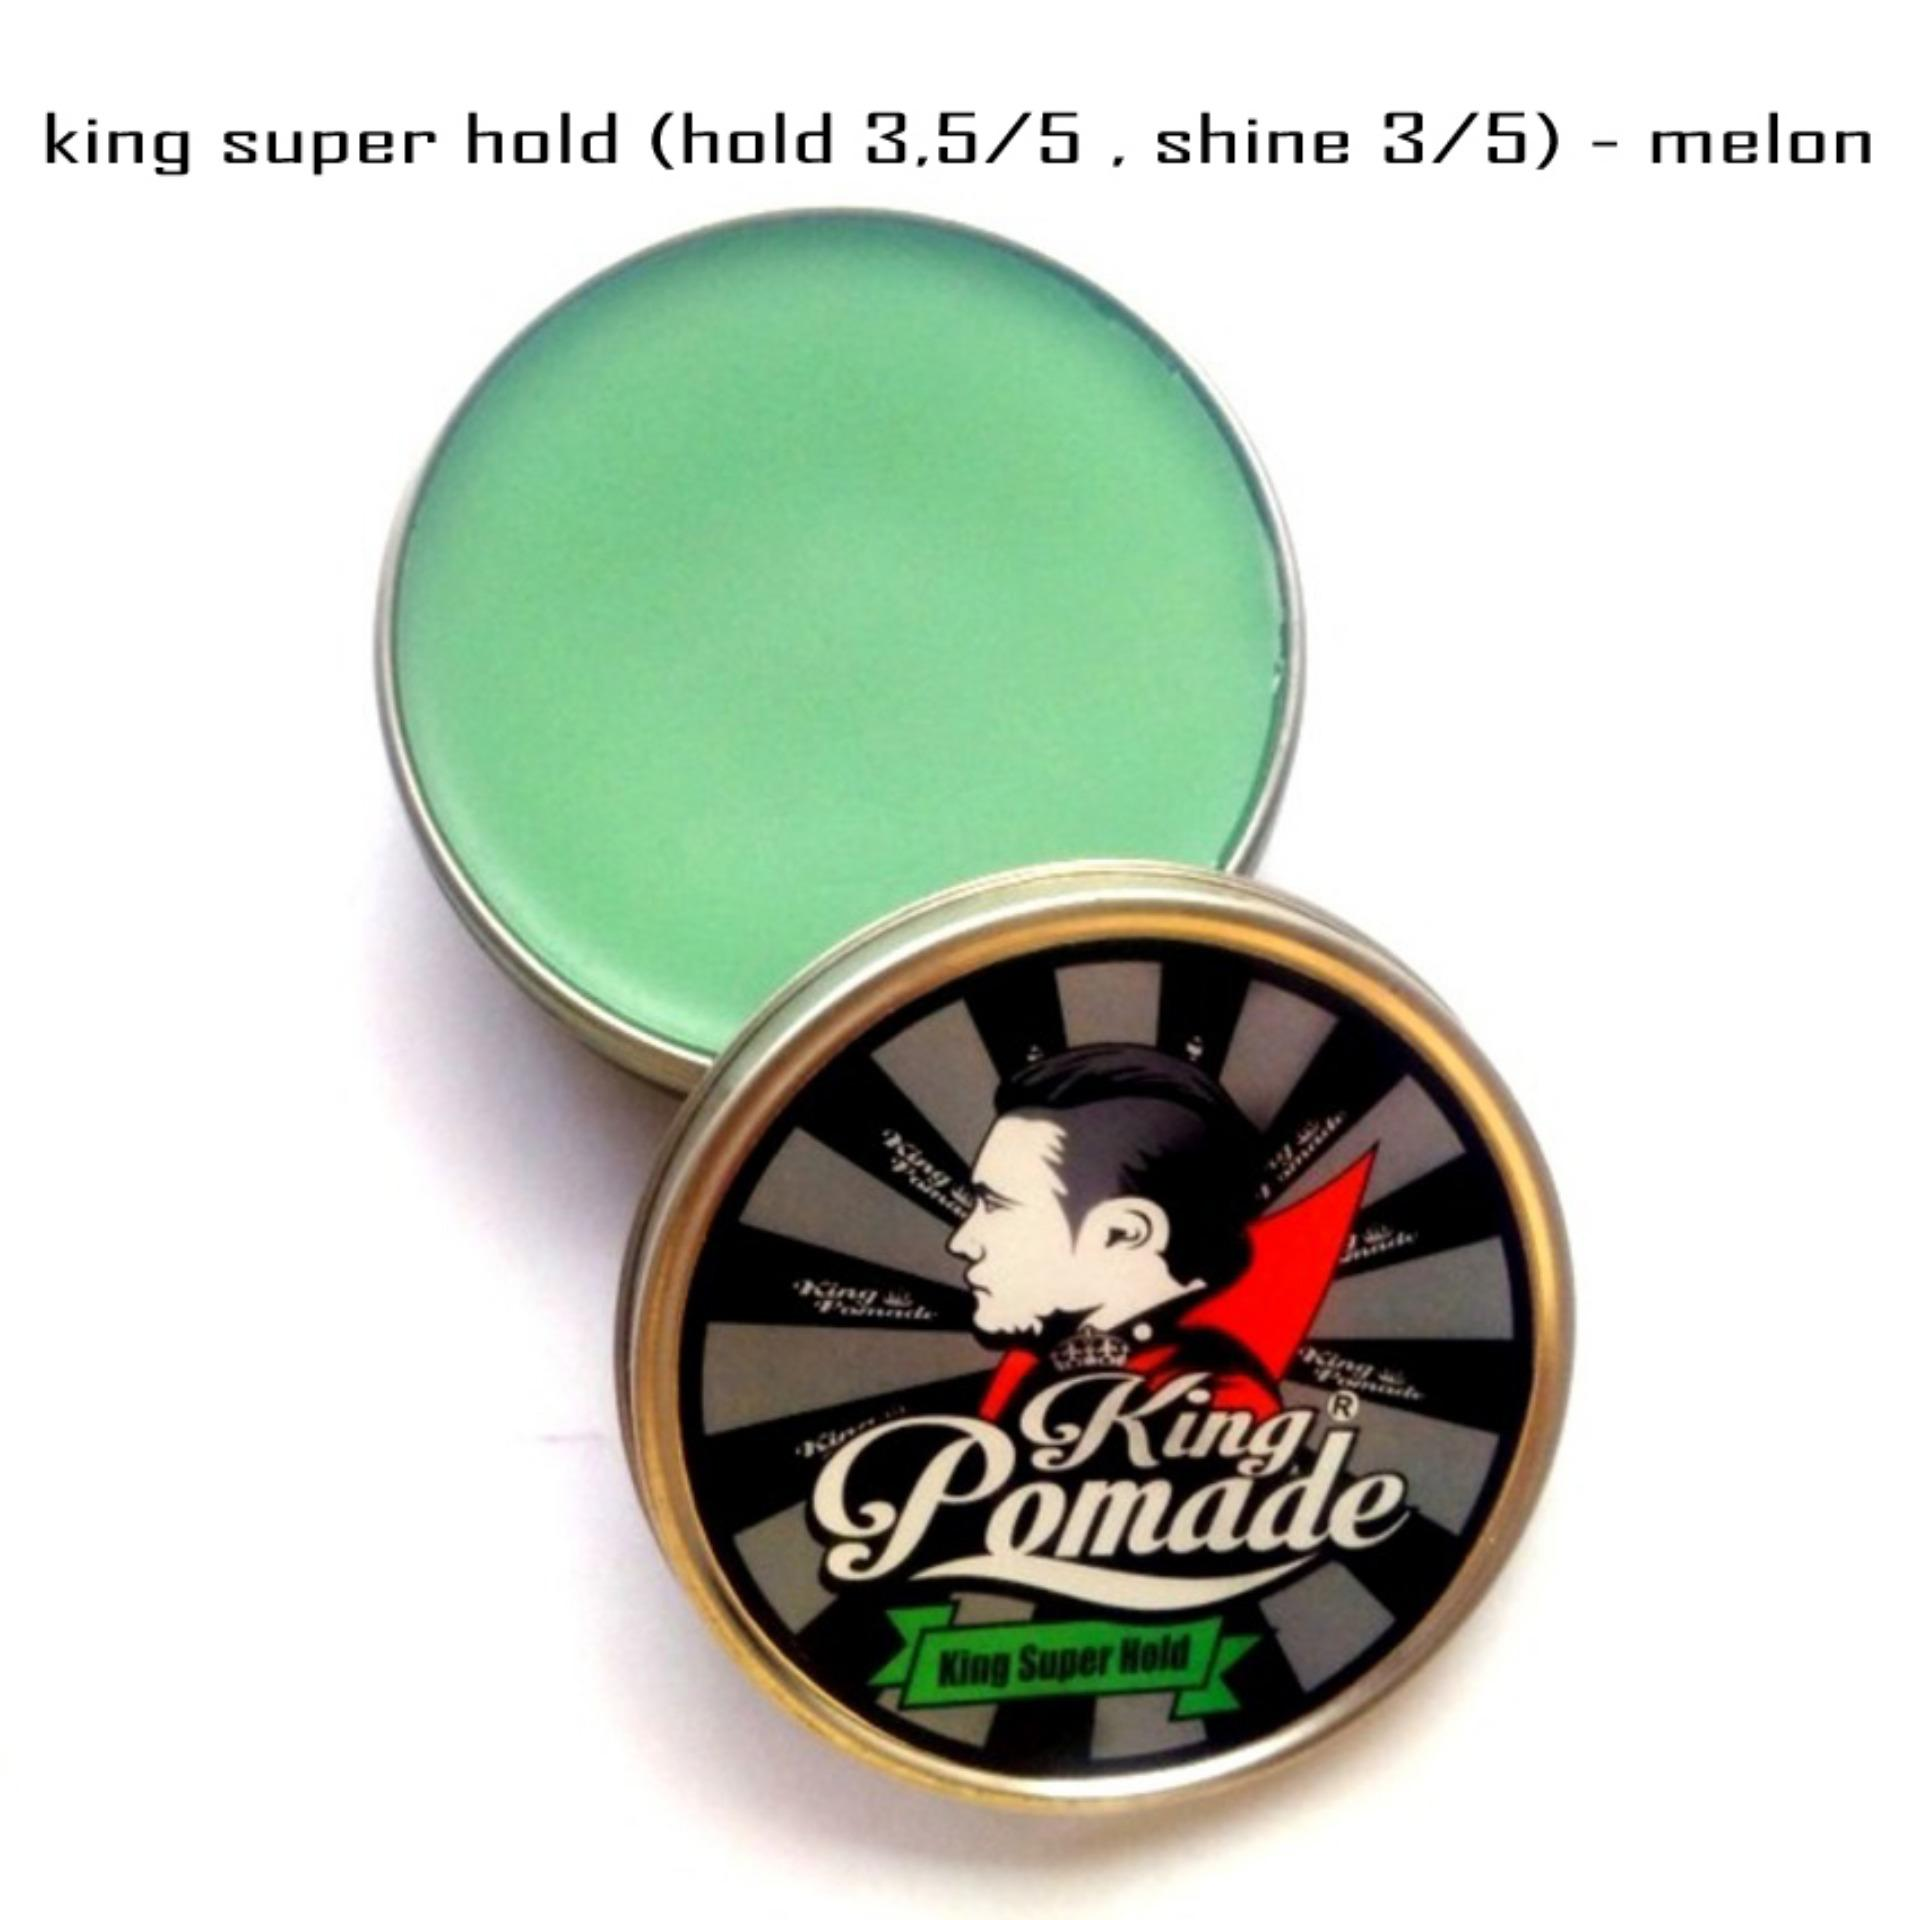 Harga King Pomade 2 8Oz 80Gram Super Hold Oilbased New